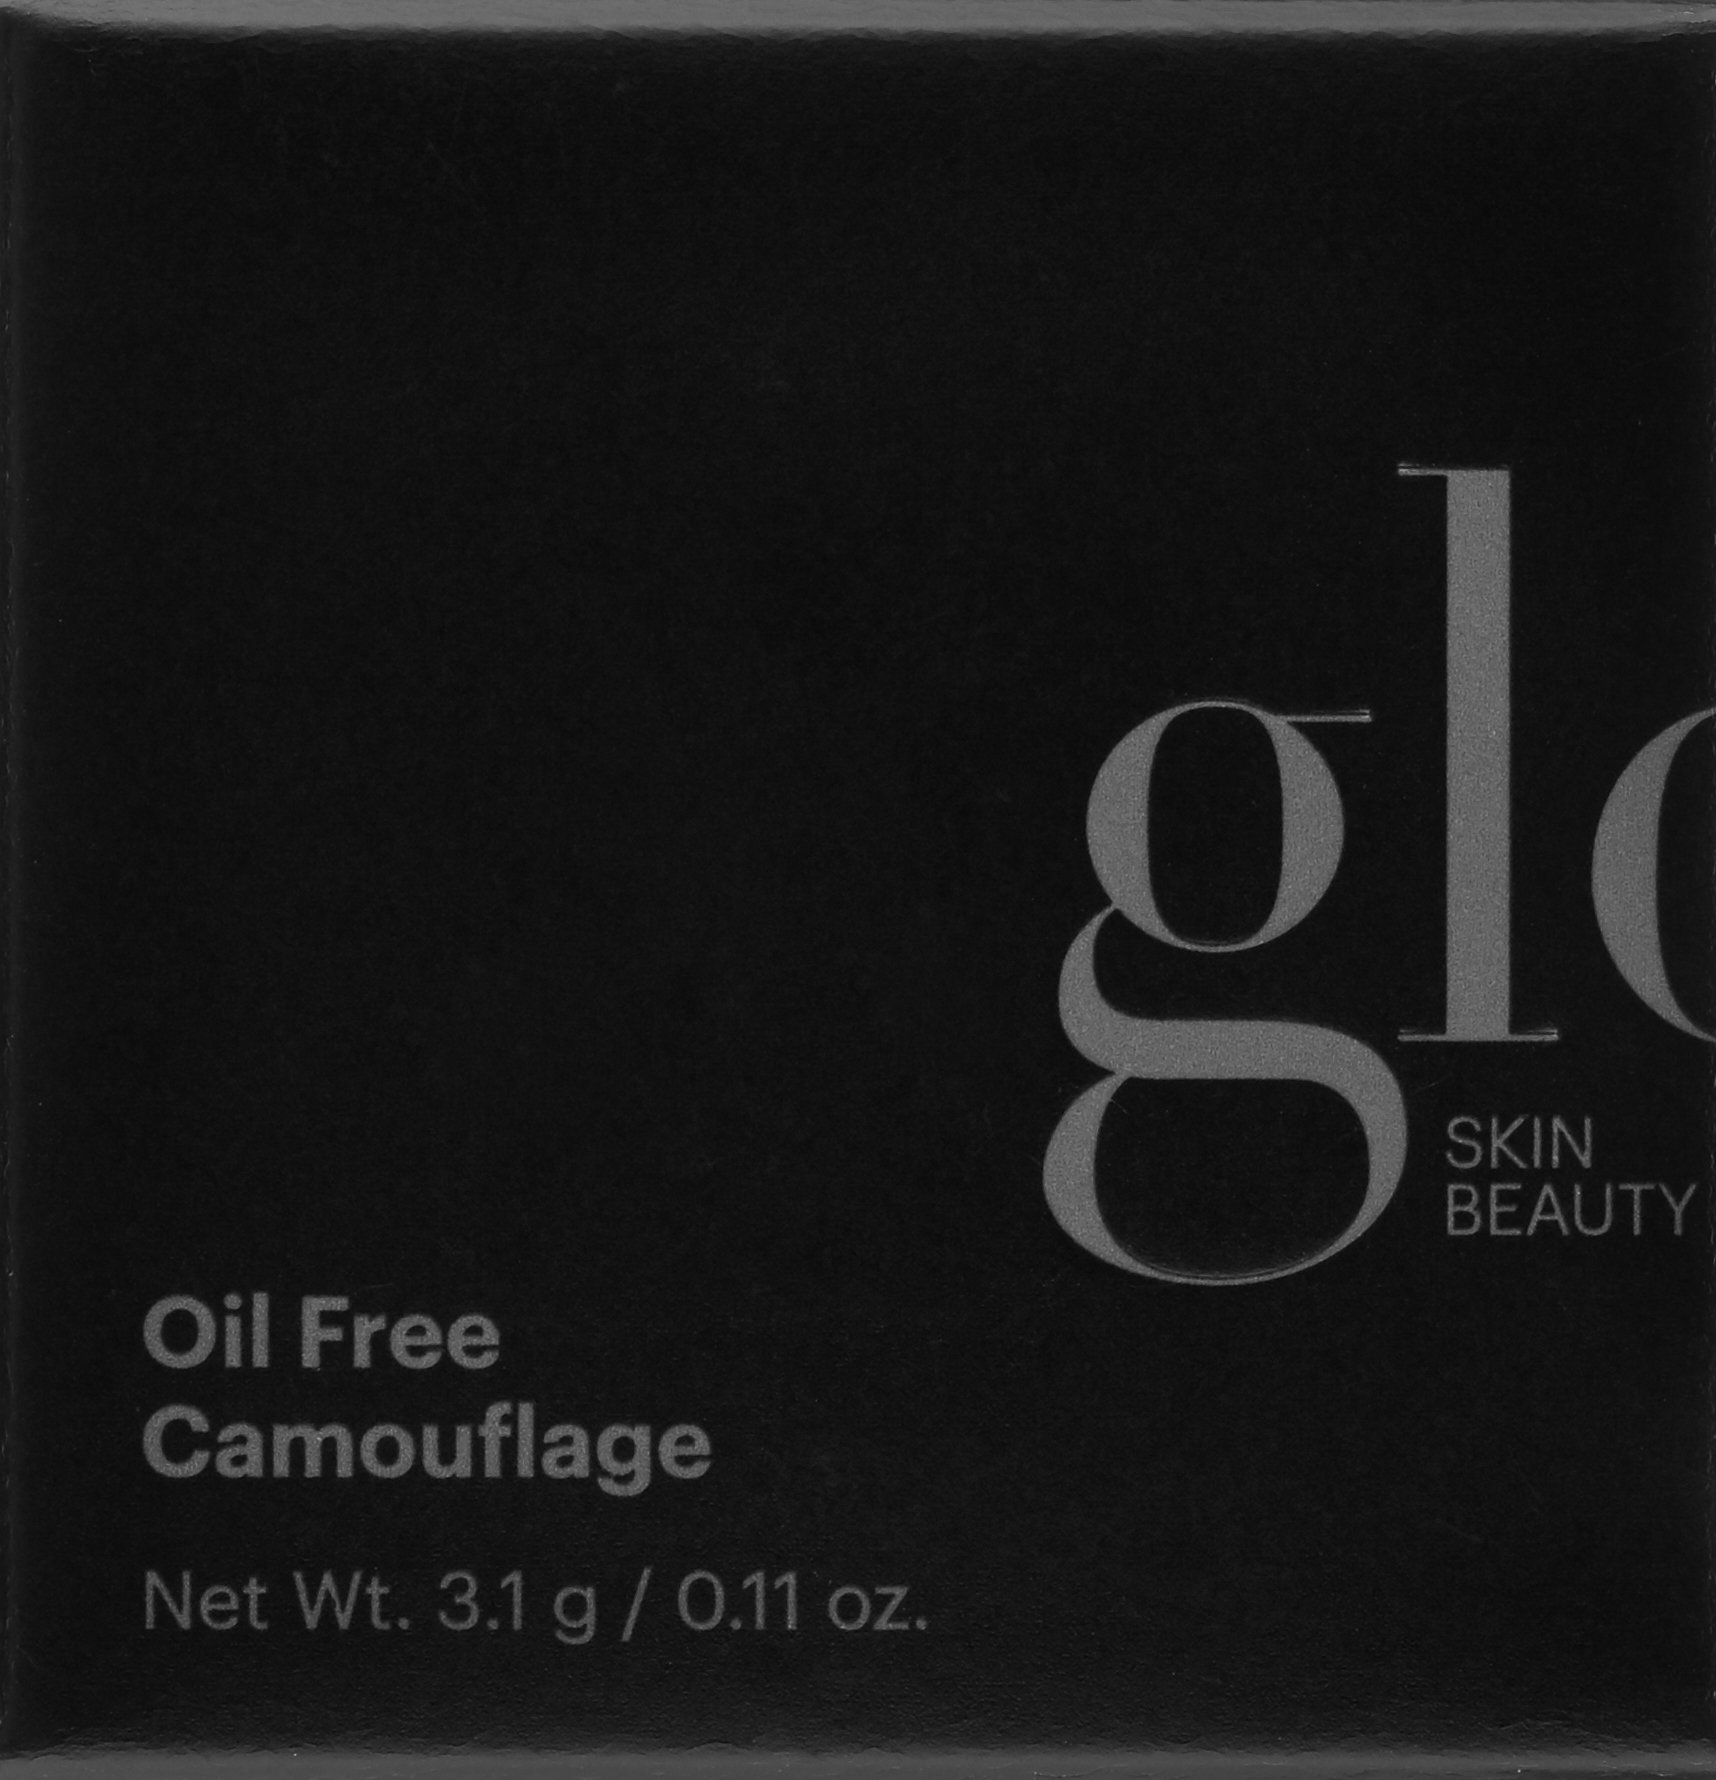 Glo Skin Beauty Oil Free Camouflage Concealer in Golden | Correct and Conceal Pimples, Scars, and Dark Spots | 4 Shades by Glo Skin Beauty (Image #3)